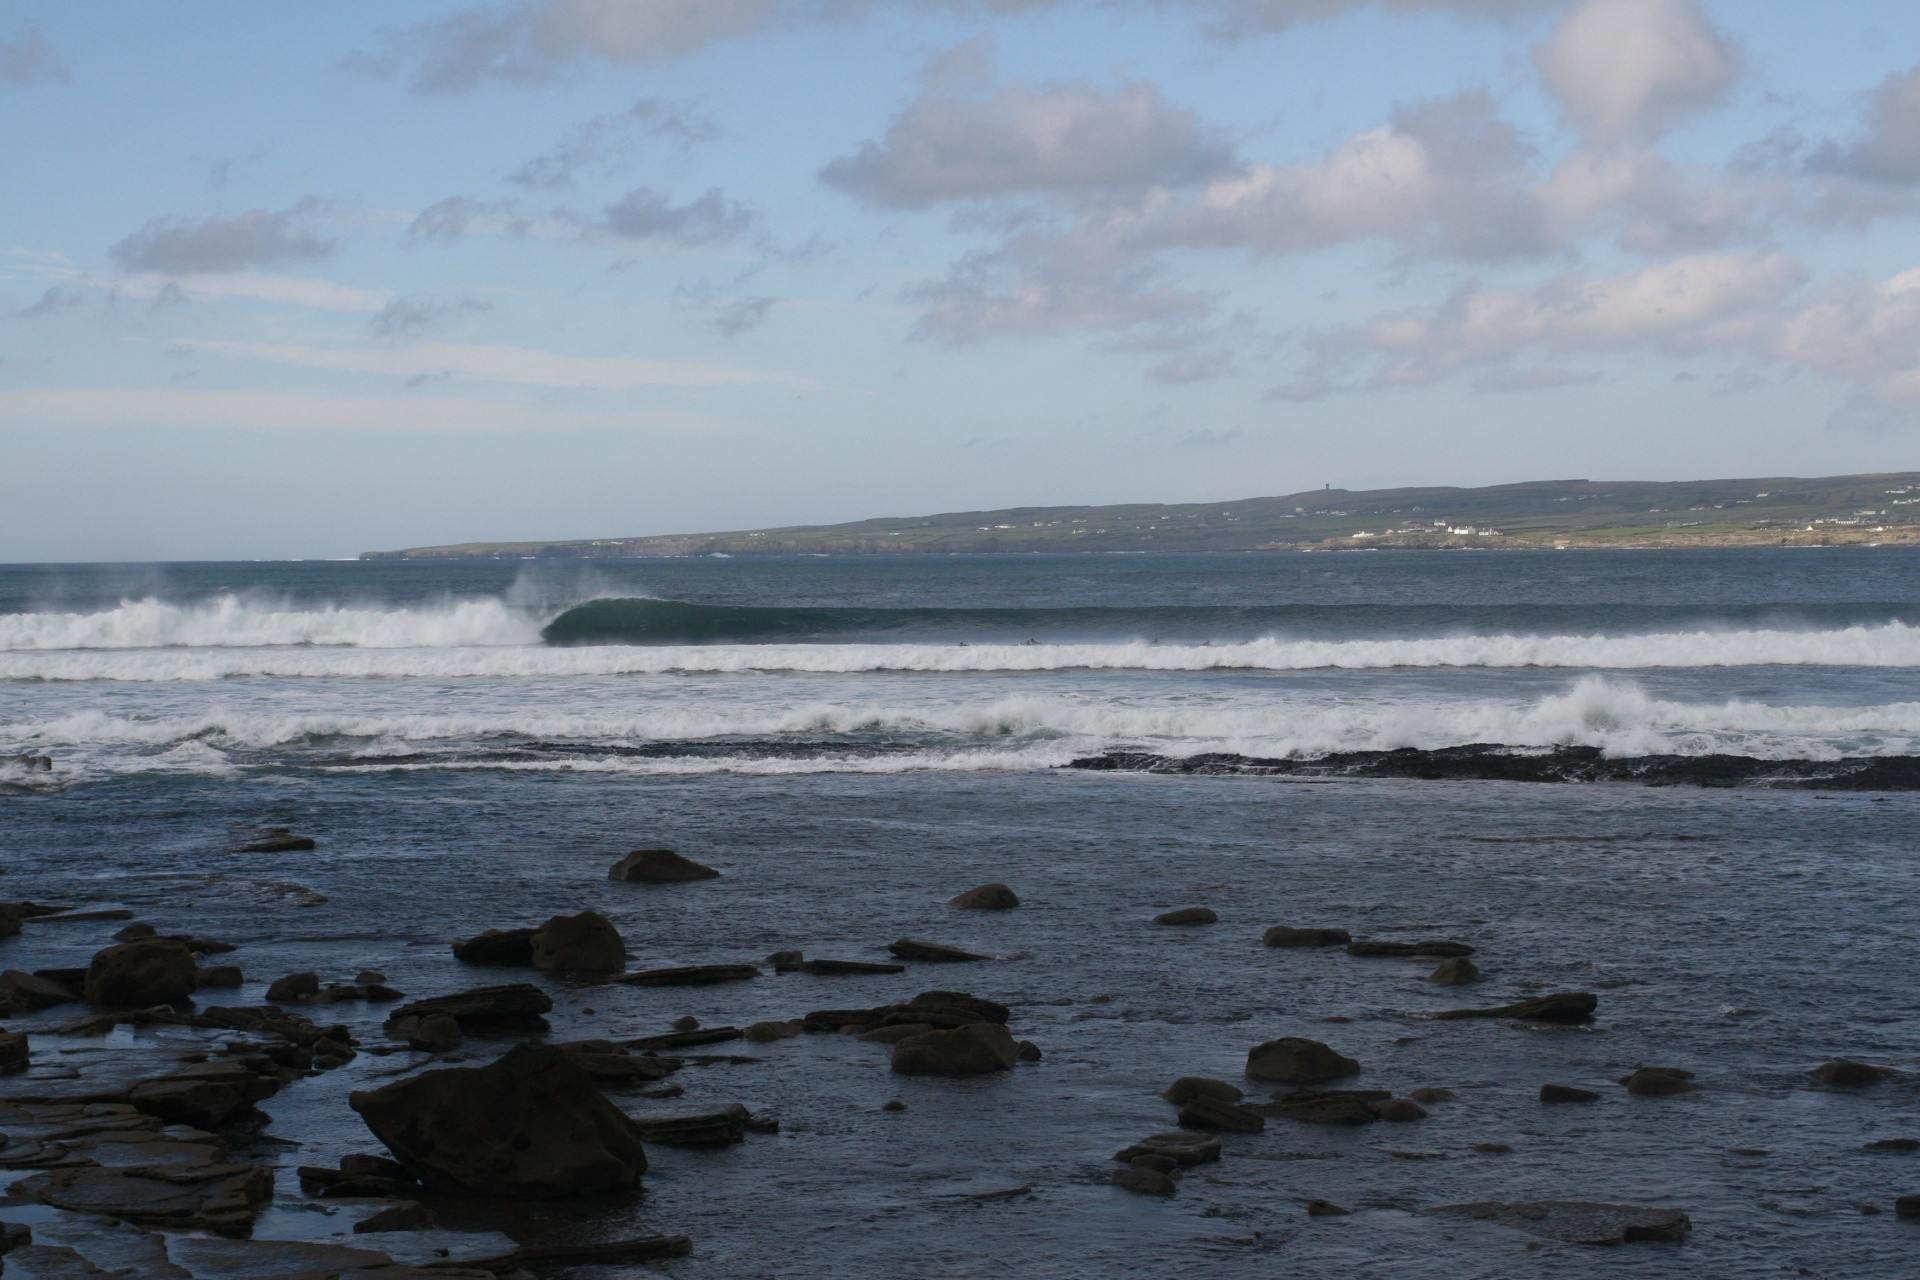 white water surf co's photo of Lahinch - Beach